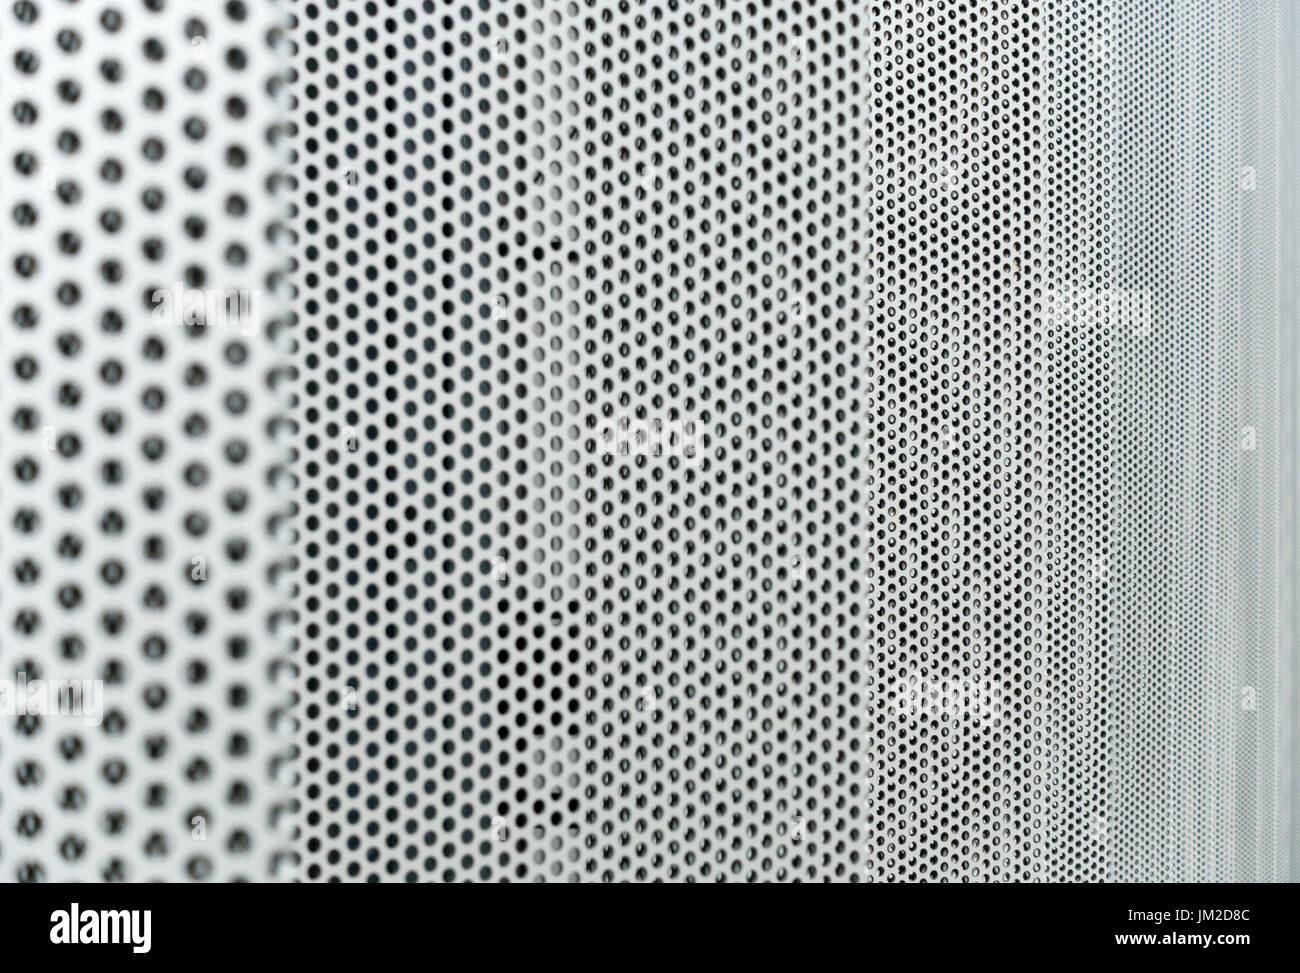 Gray metal background, round perforated metal texture - Stock Image